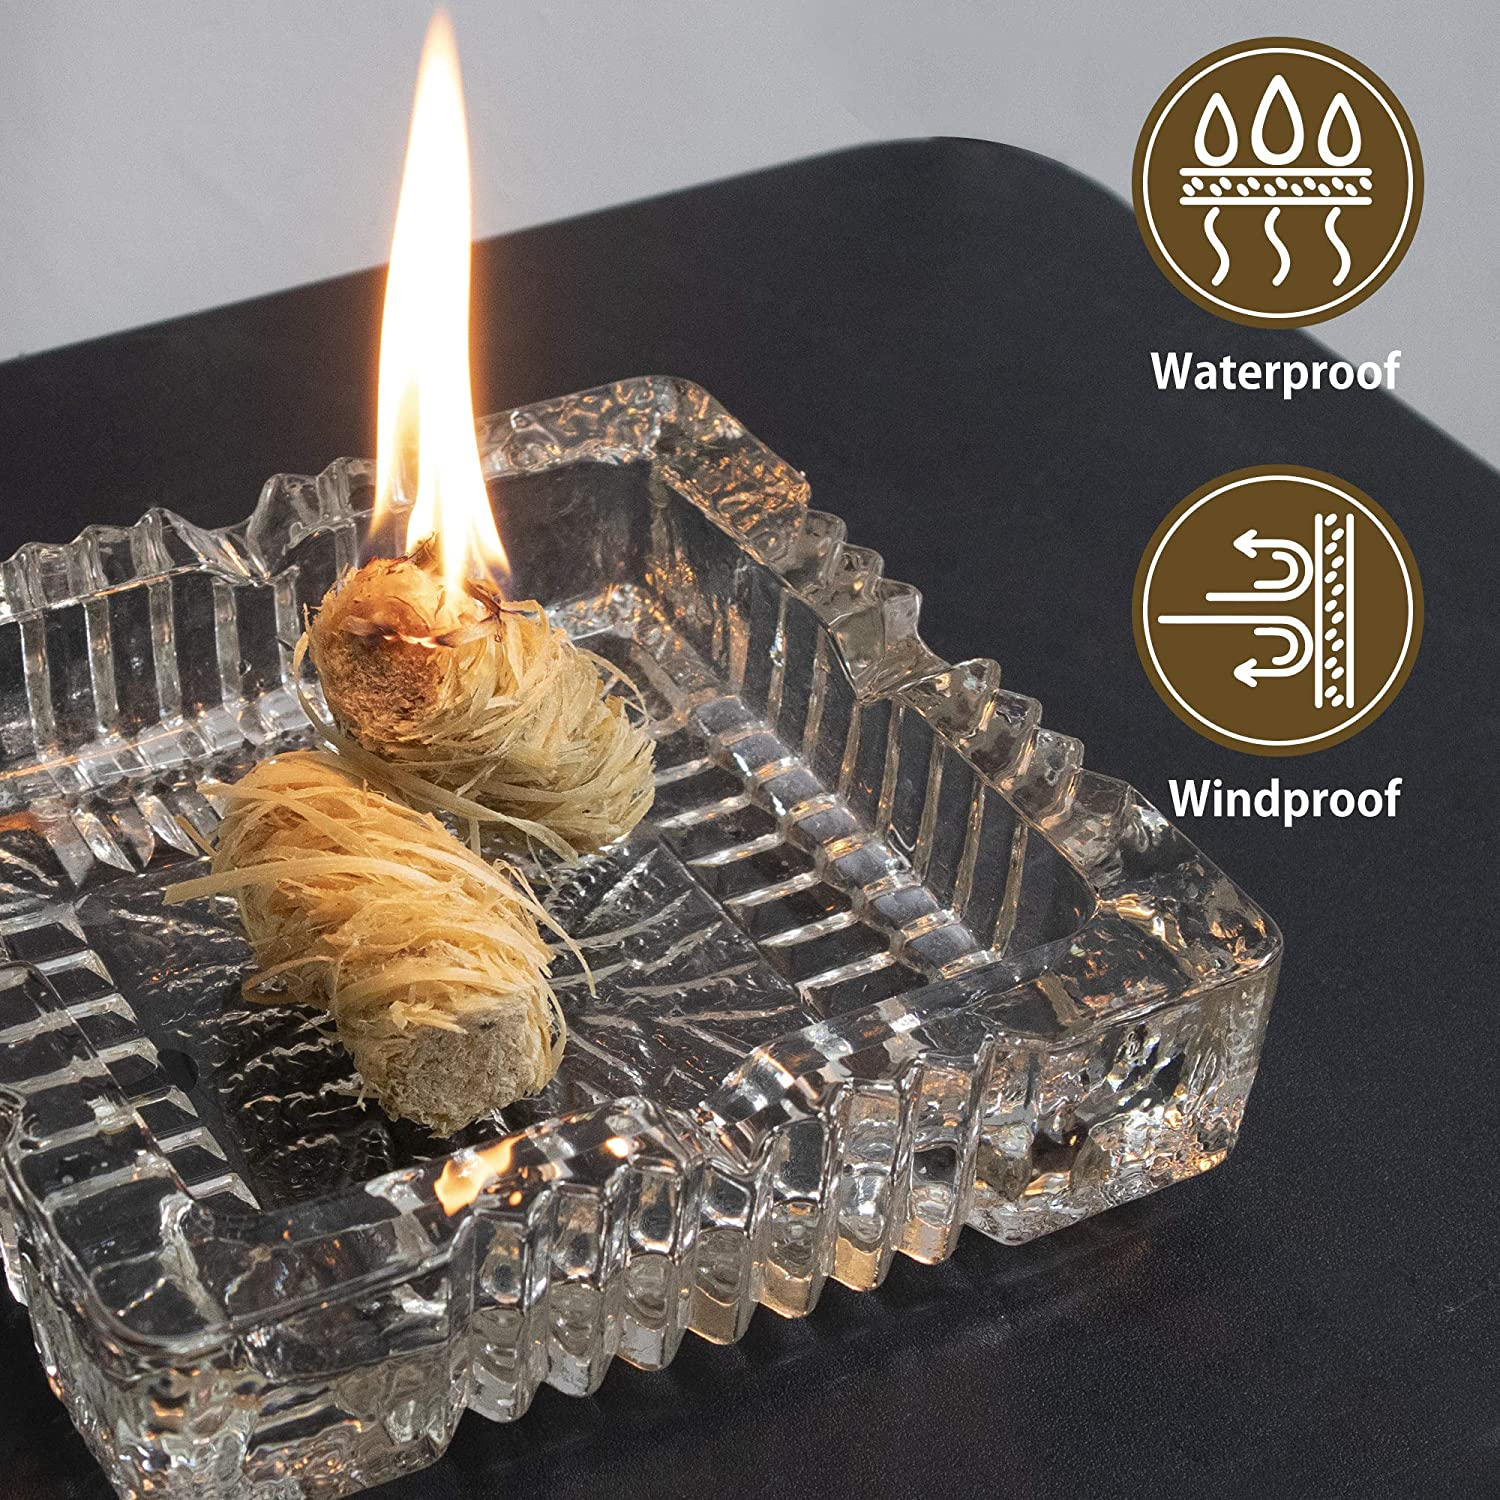 SWATOM Fire Charcoal Starters Firelighters Kindling Wood for Chimney Grill Fireplace Campfire BBQ Burn Pellet Stove Oven (25pcs) : Garden & Outdoor